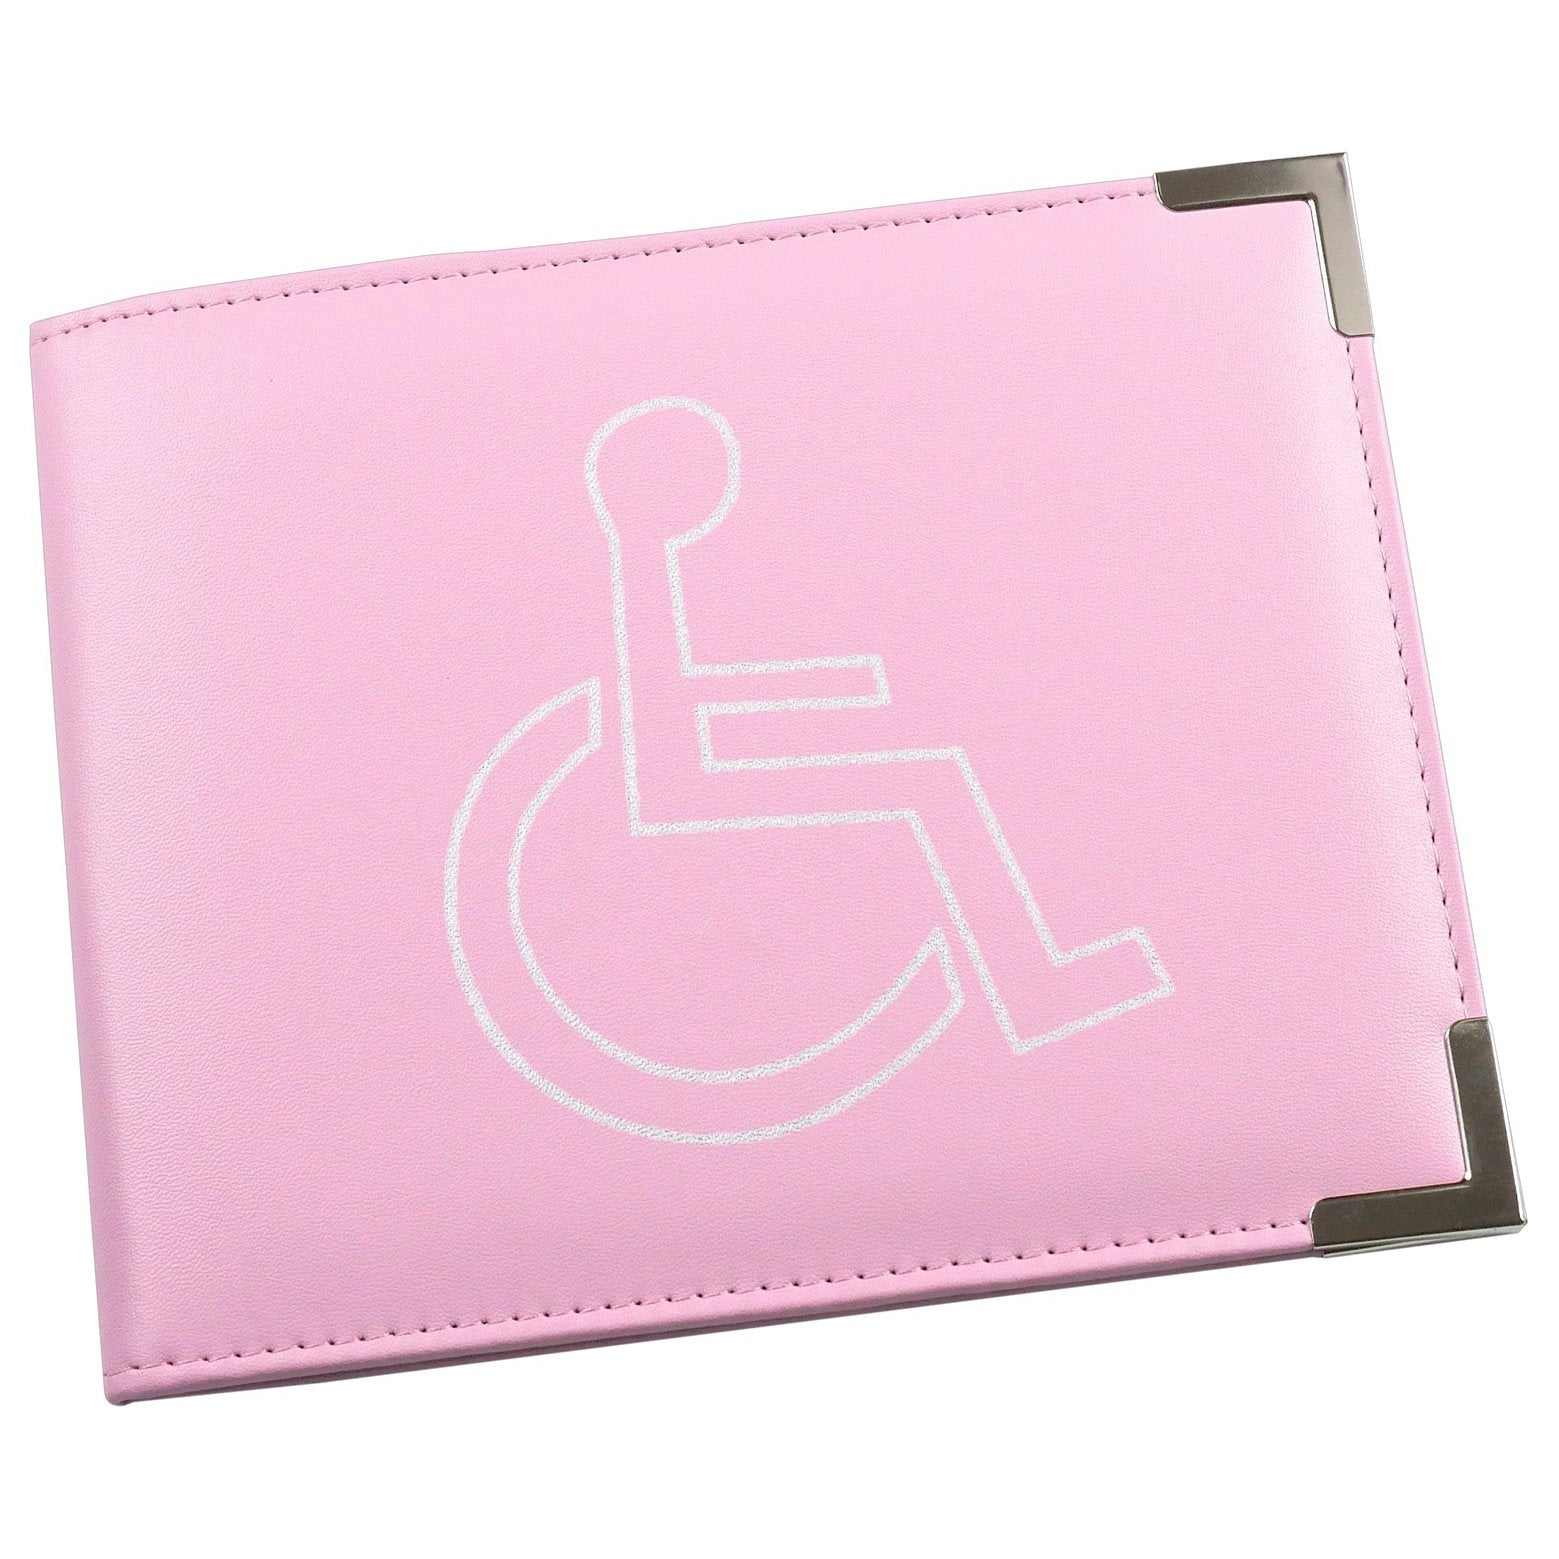 Esposti Disabled Blue Badge & Timer Holder - PU Leather - Hologram Safe - Pink